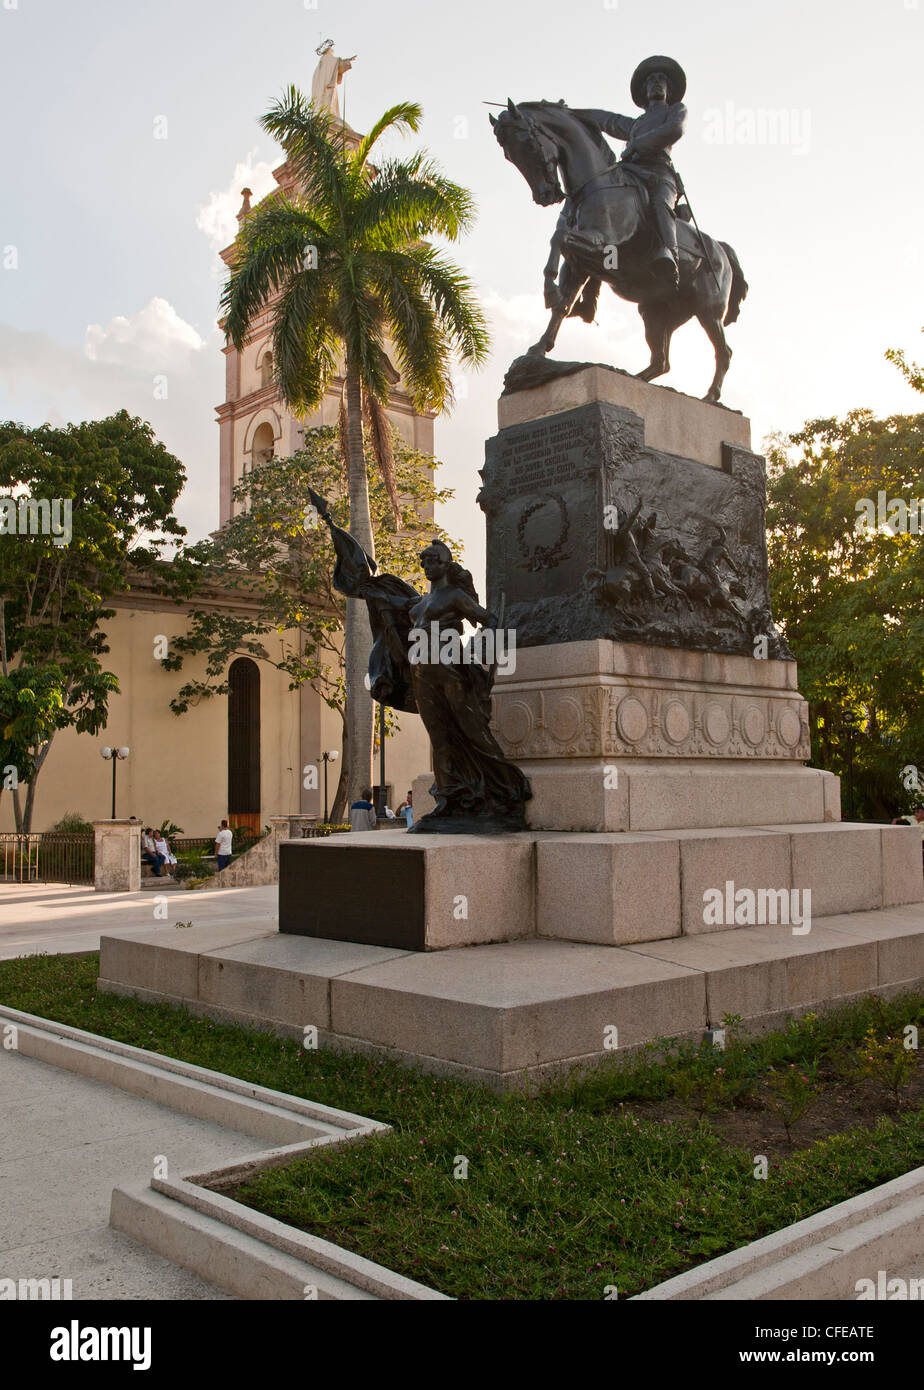 Statue in square in Camaguey, Cuba honouring the revolution against Spain. - Stock Image